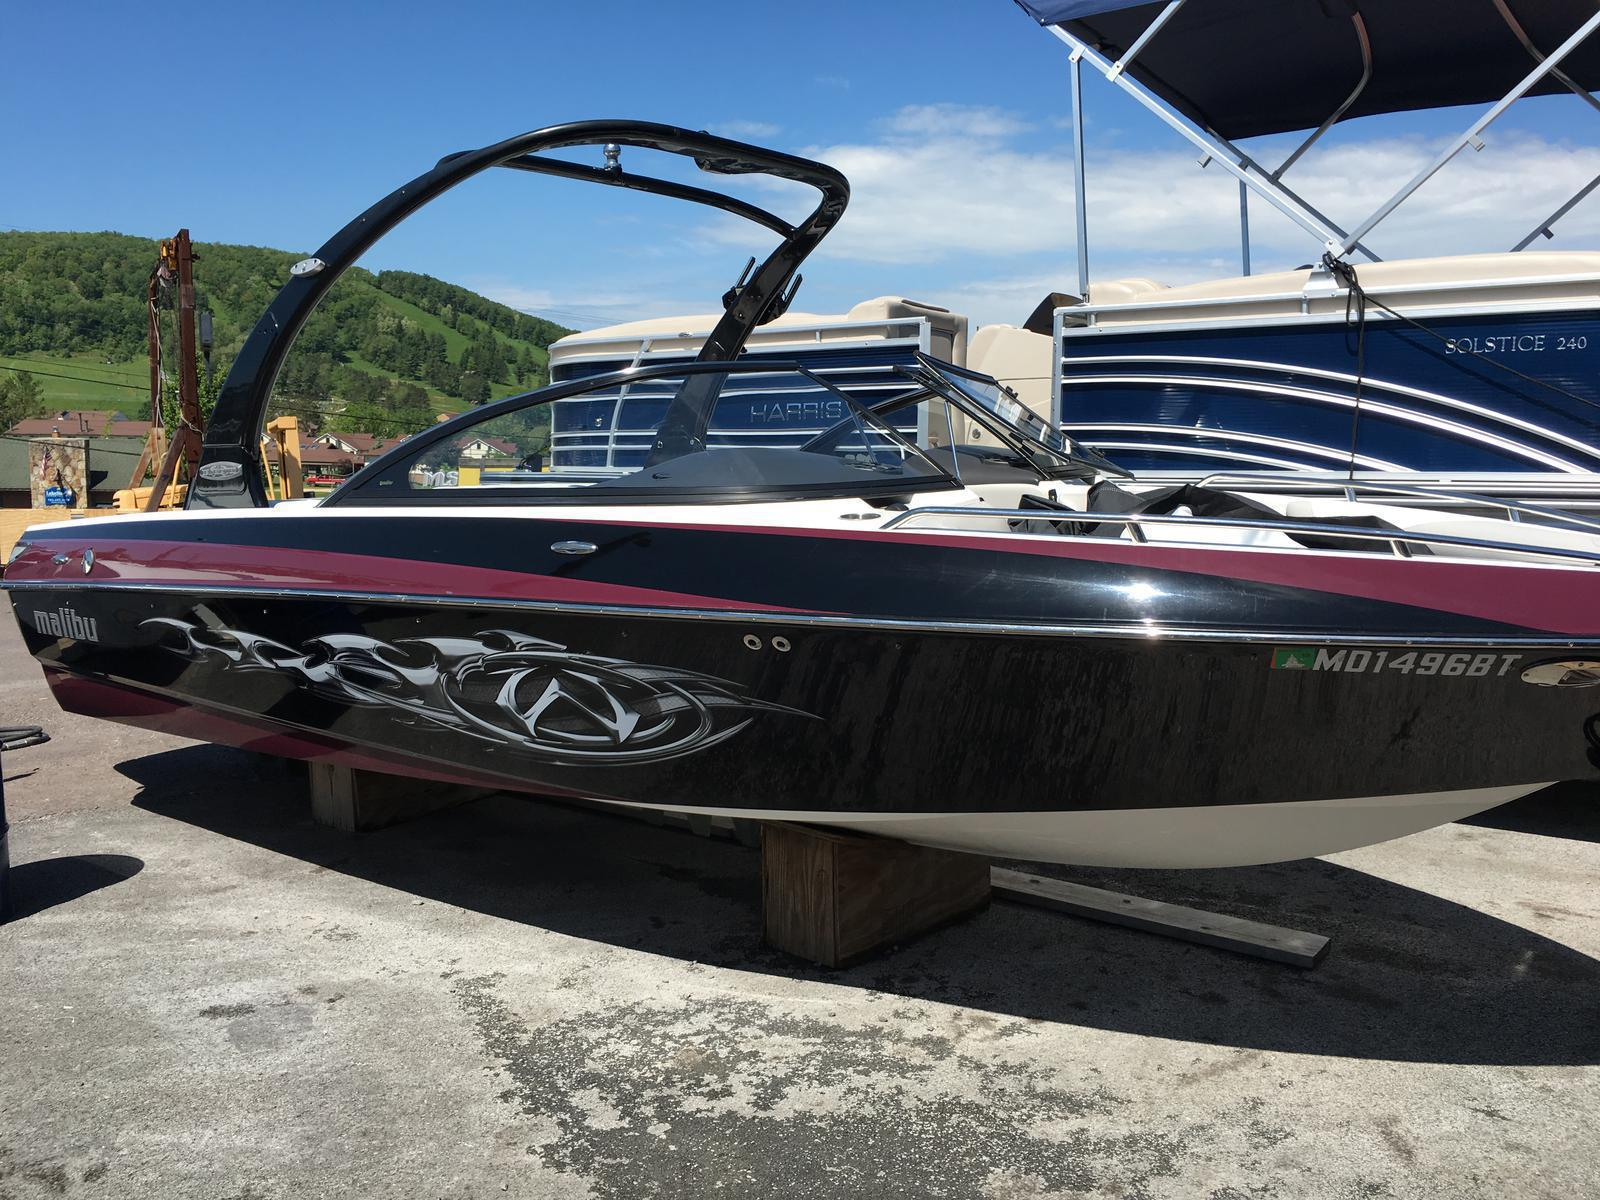 Malibu Boats LLC 21.5 XTI Sunsetter